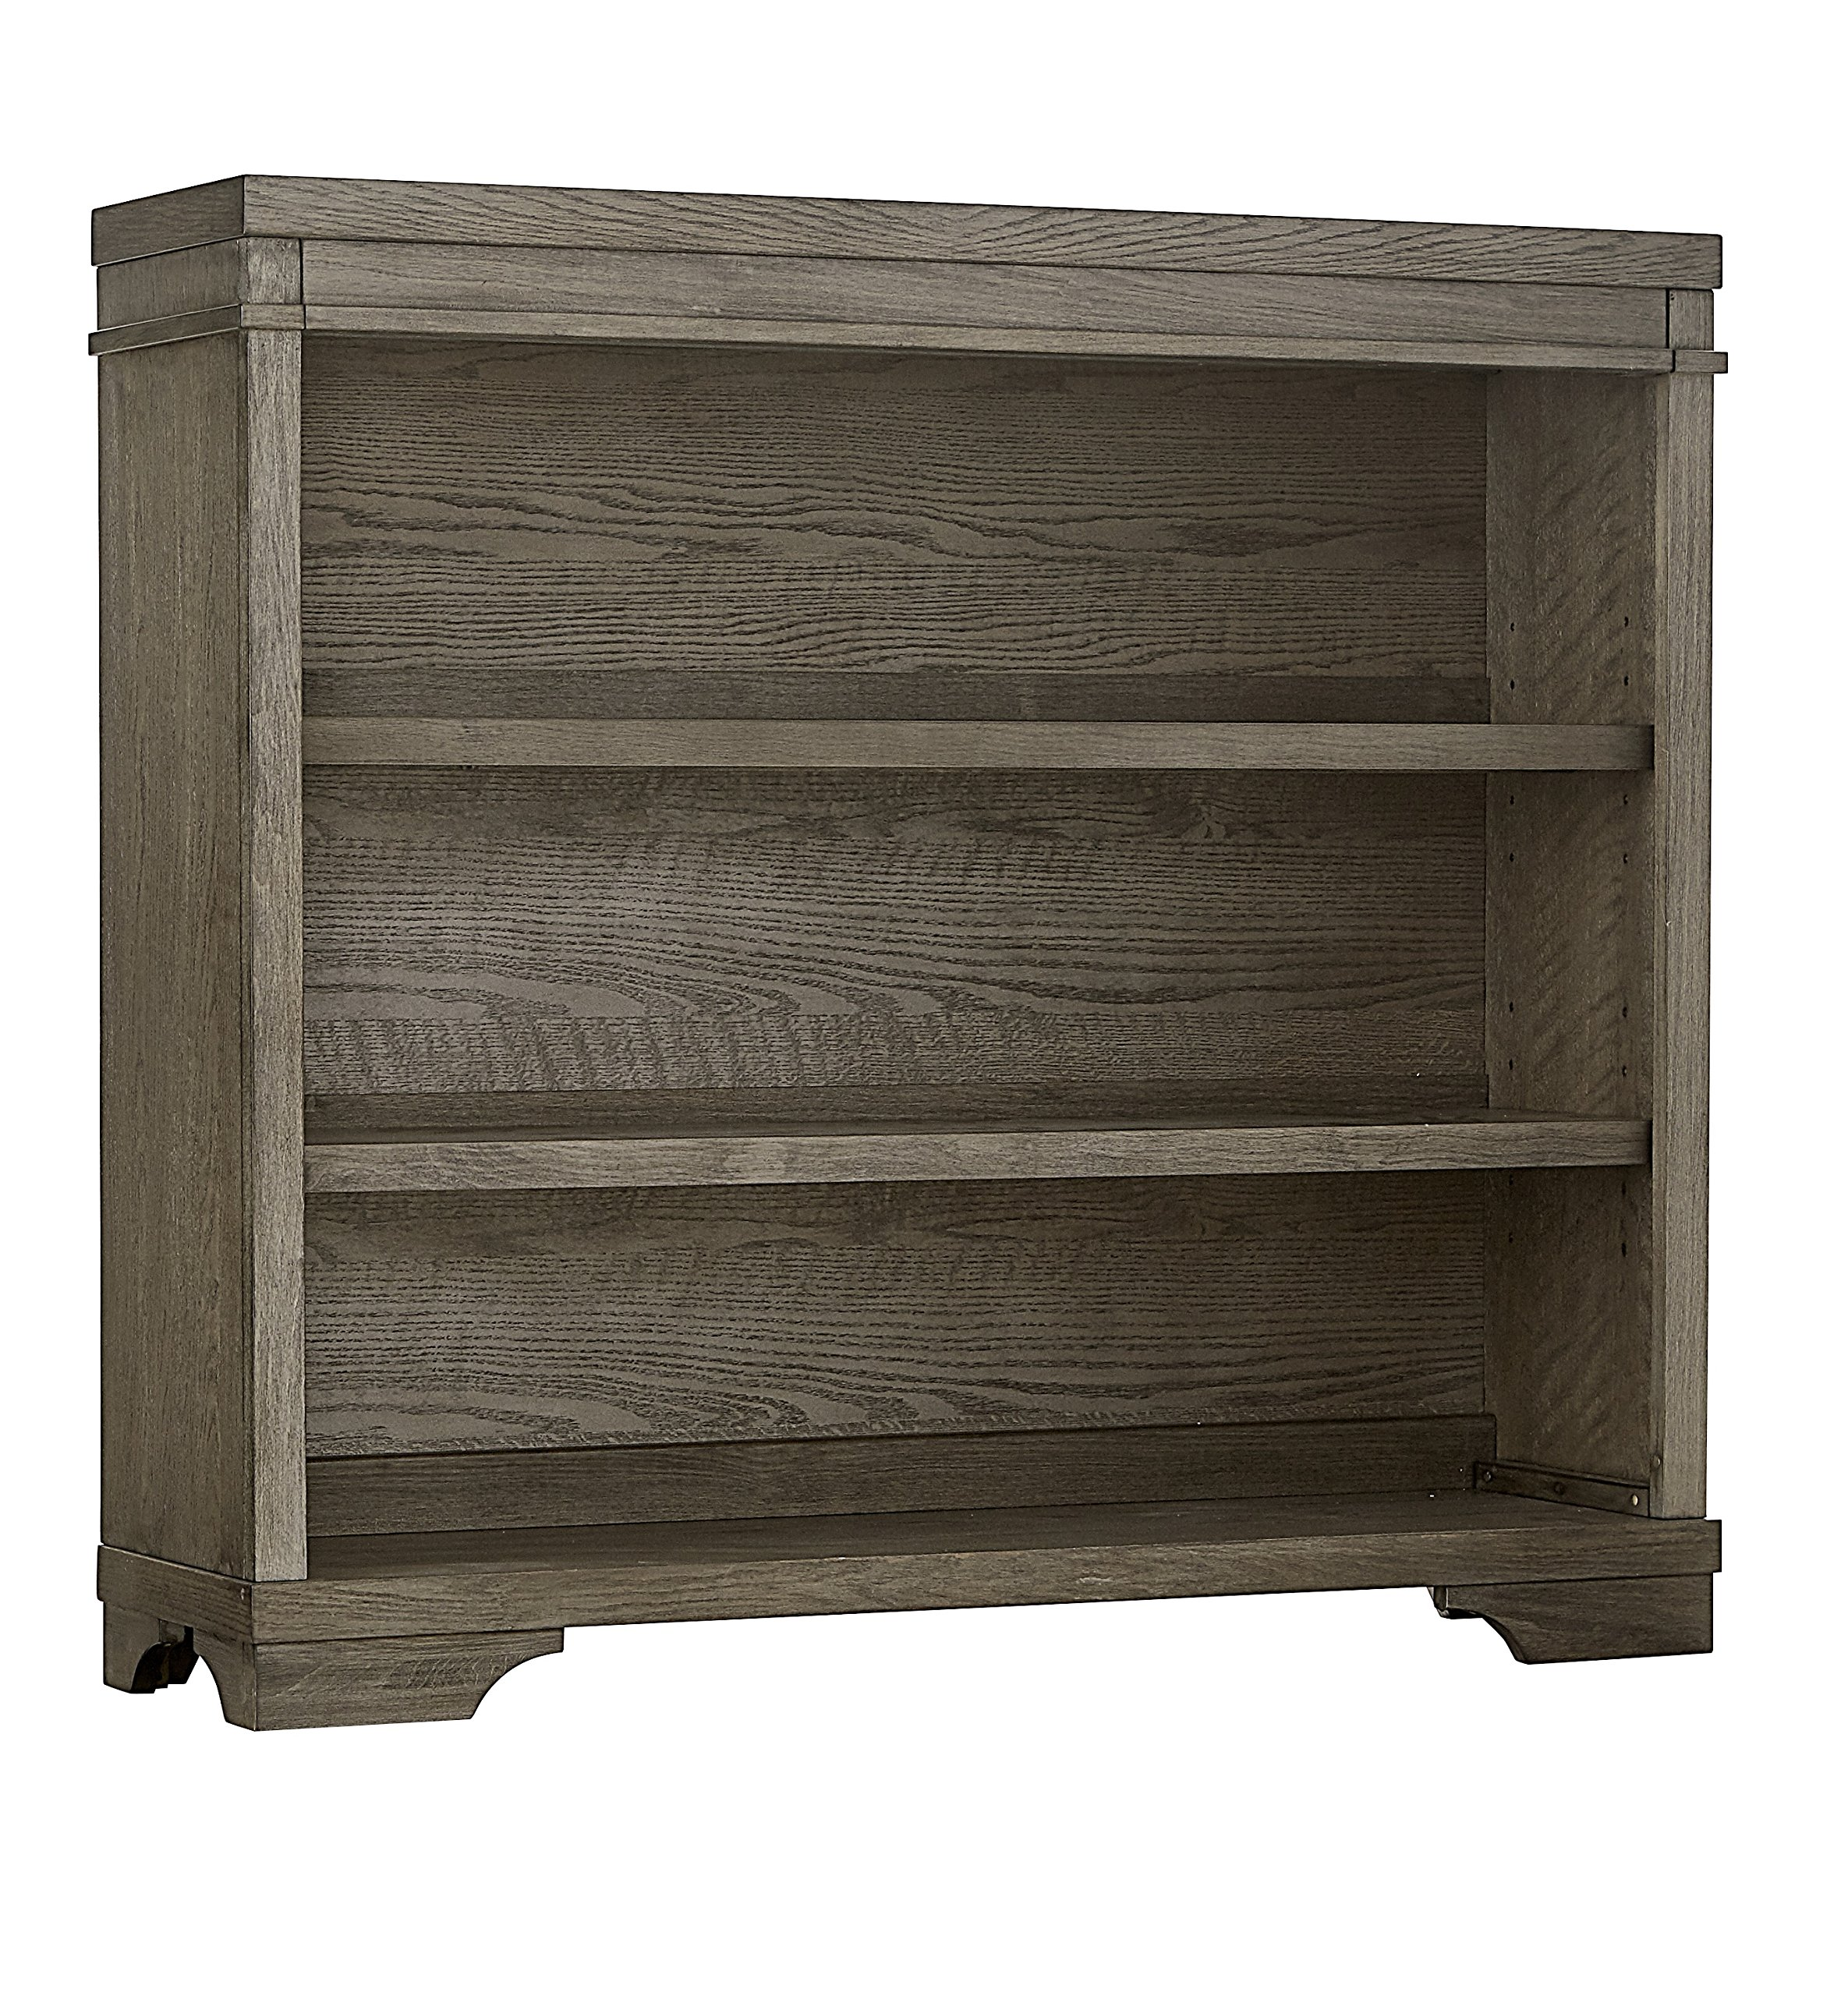 Westwood Design Foundry Hutch or Bookcase, Brushed Pewter